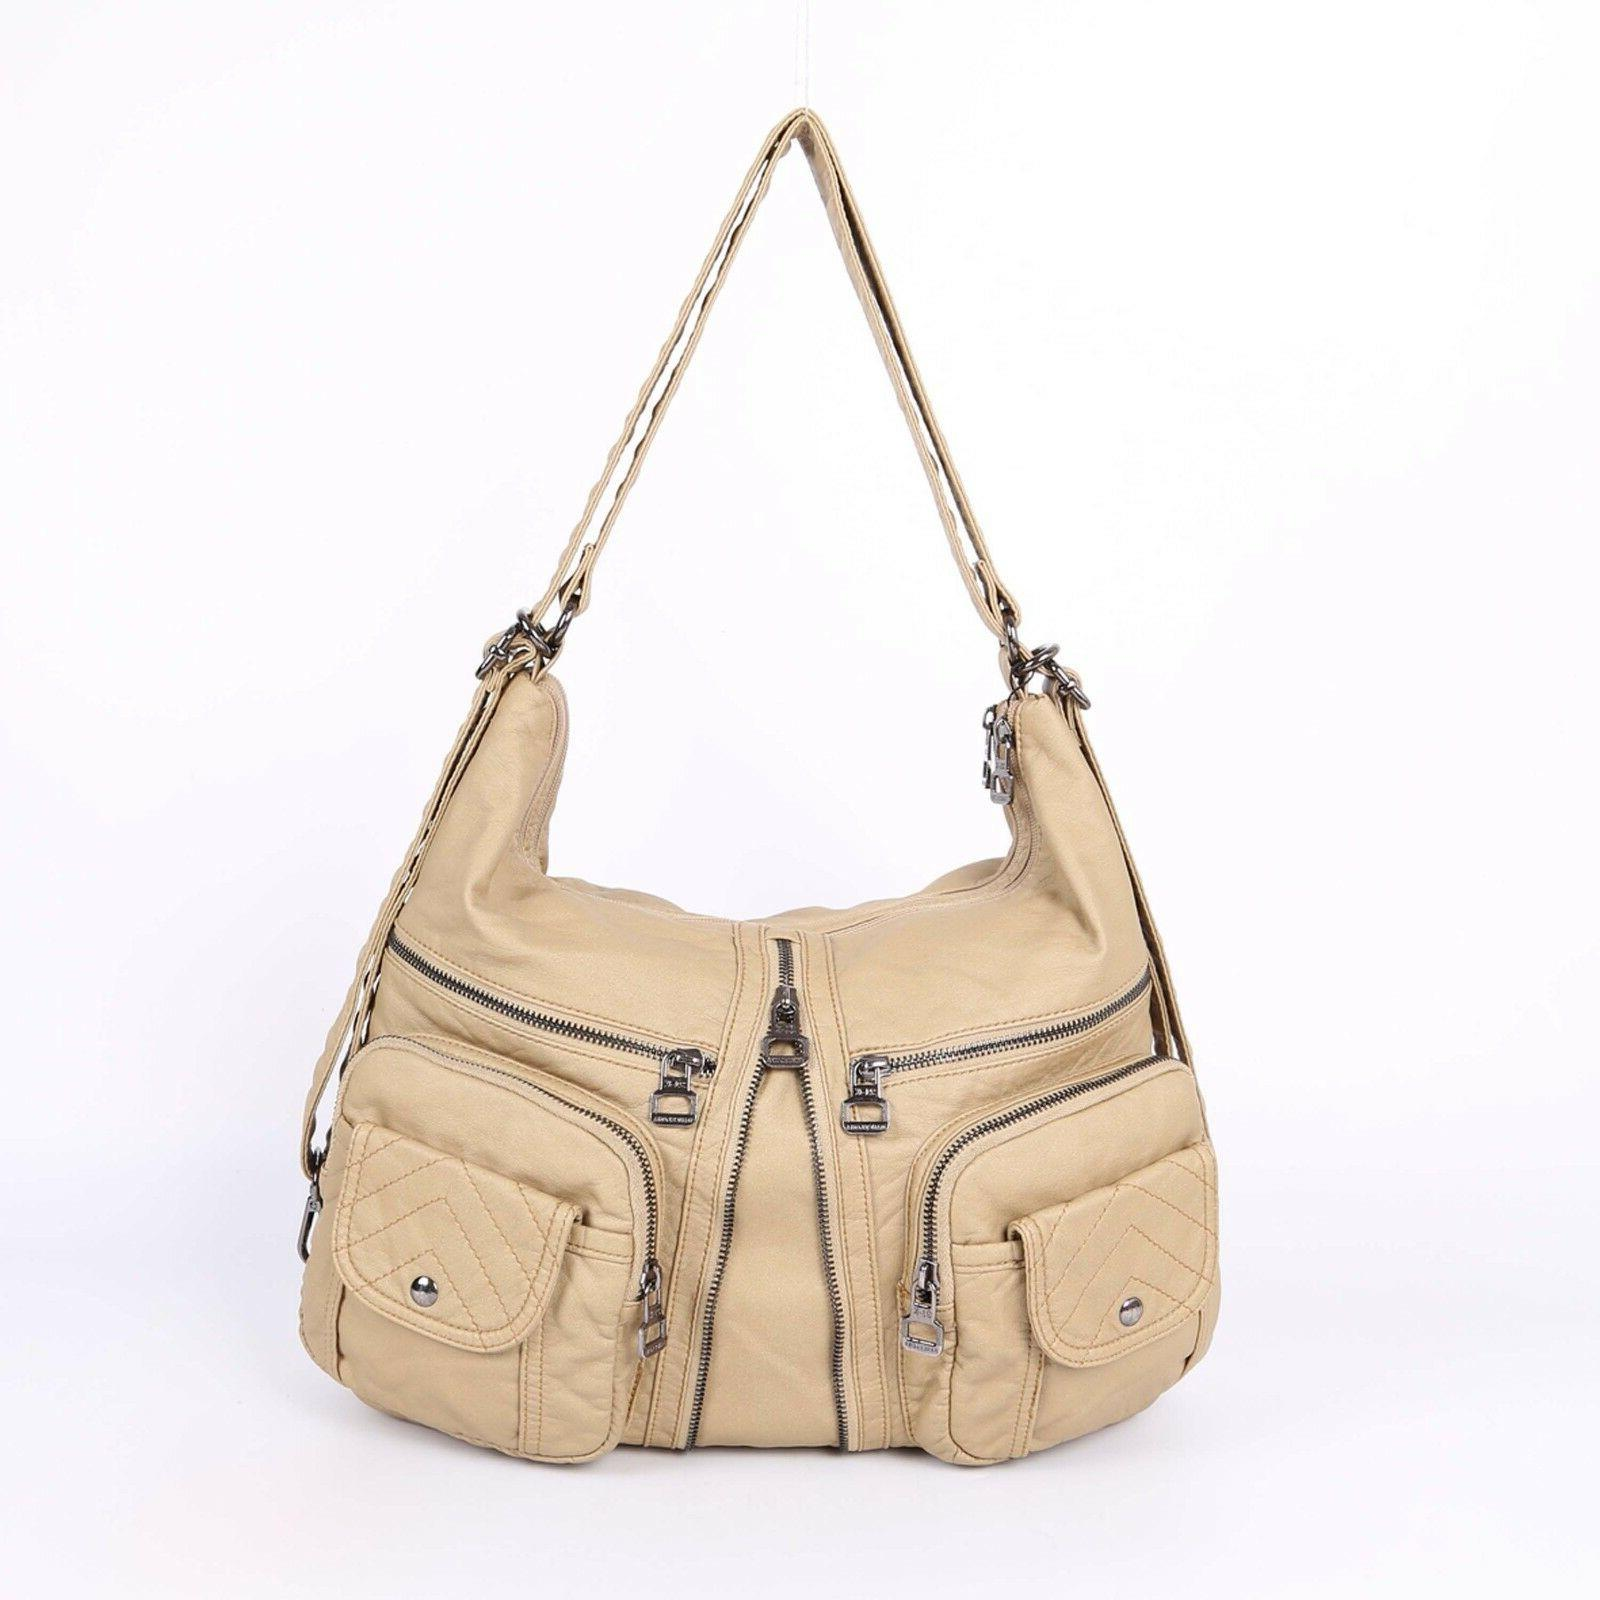 angelkiss two top zippers multi pockets handbags